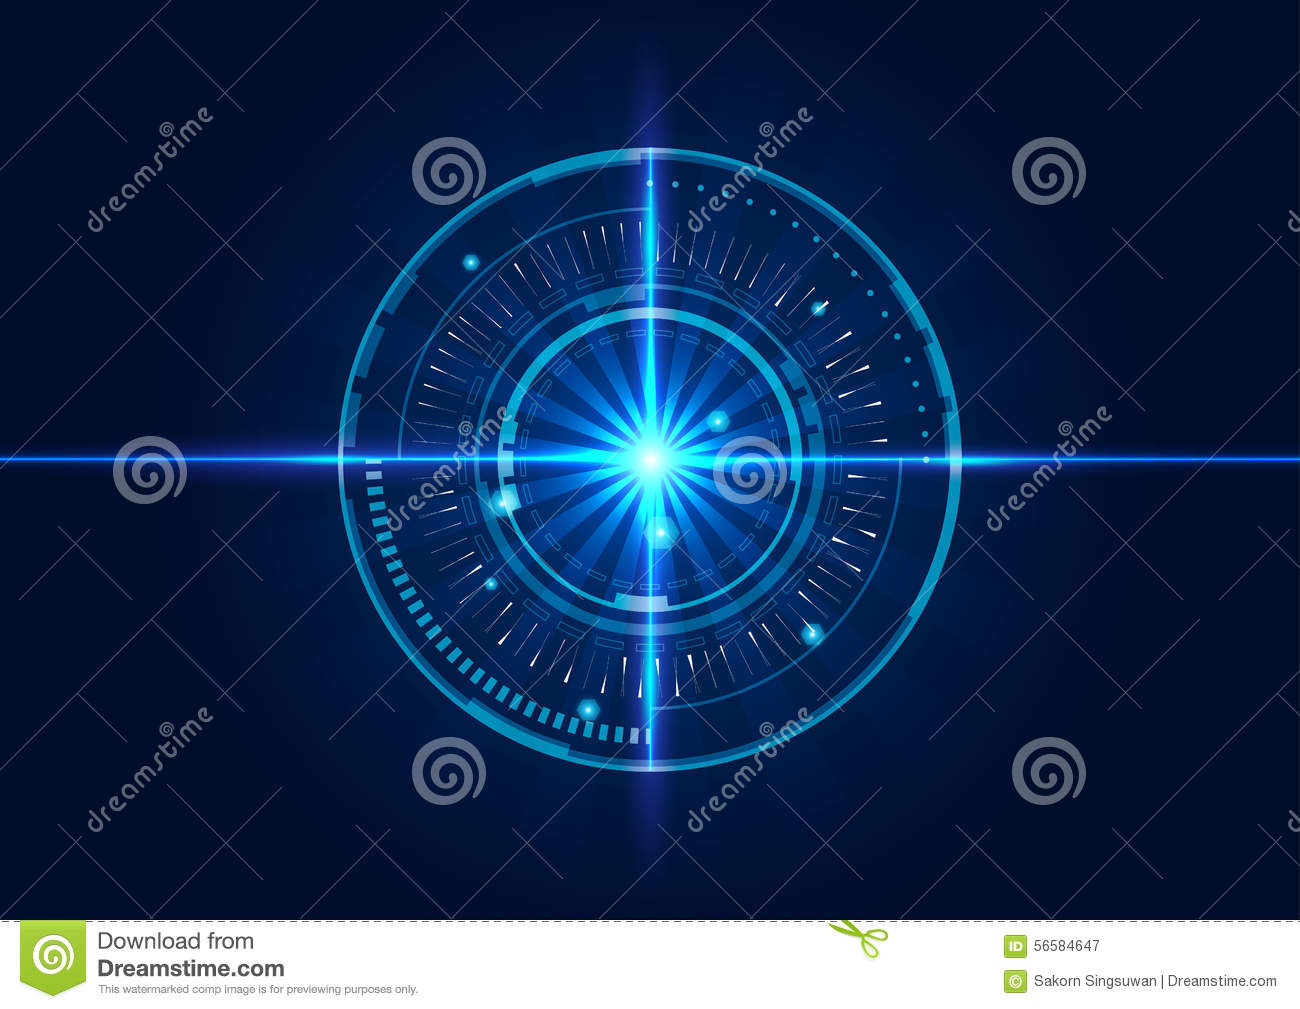 Abstract Technology Background With Light Effect: Abstract Tech Circles Background Design With Light Effect